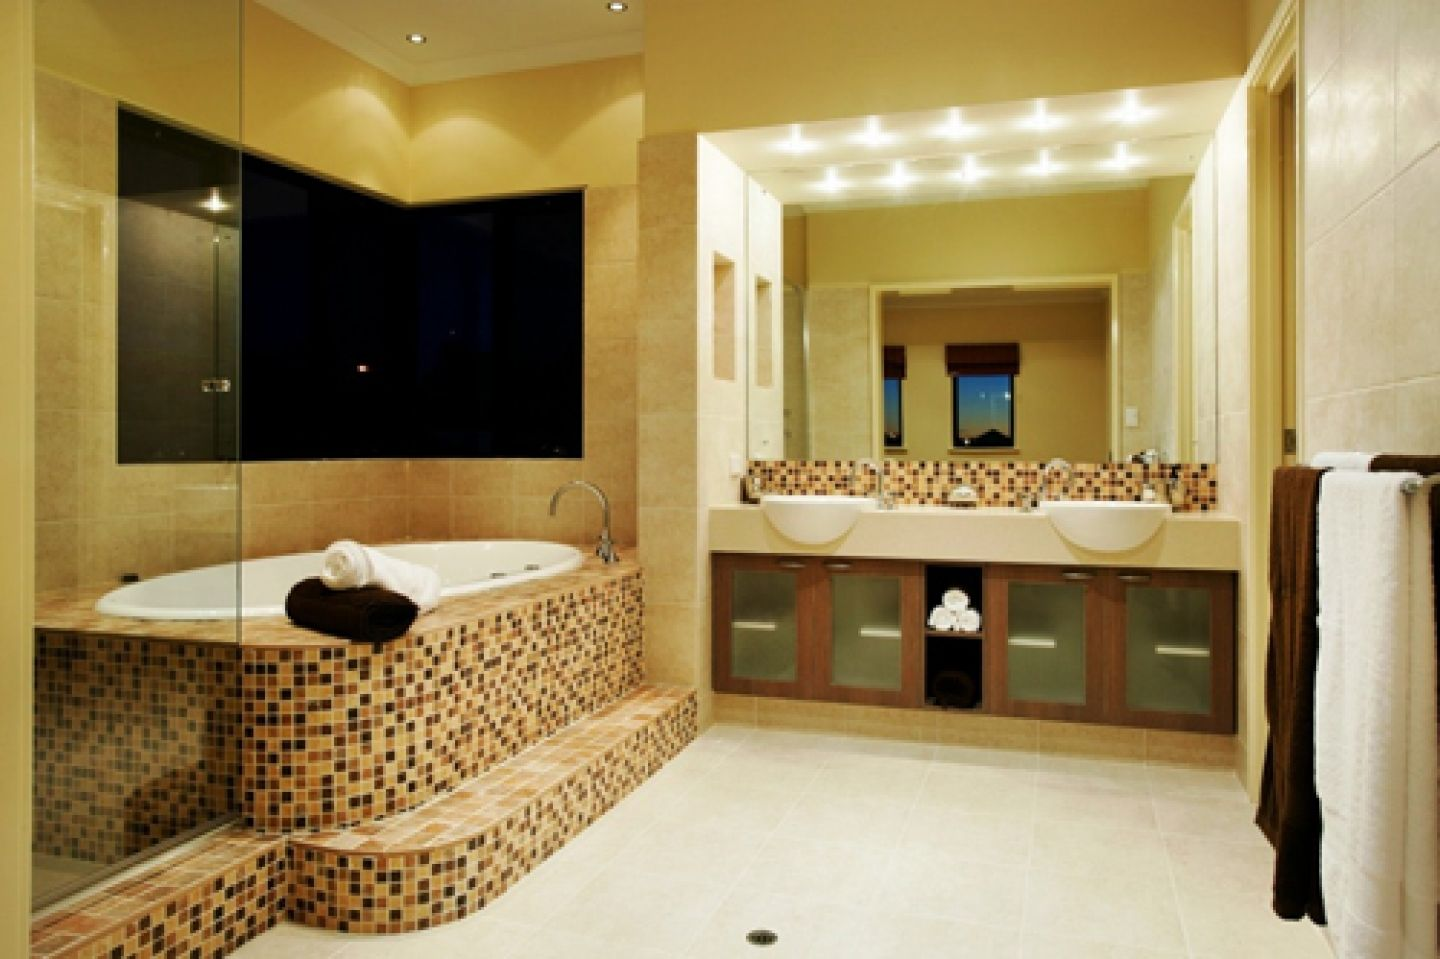 Beneficial Ideas Of Paint Colors For Bathrooms - astounding ...